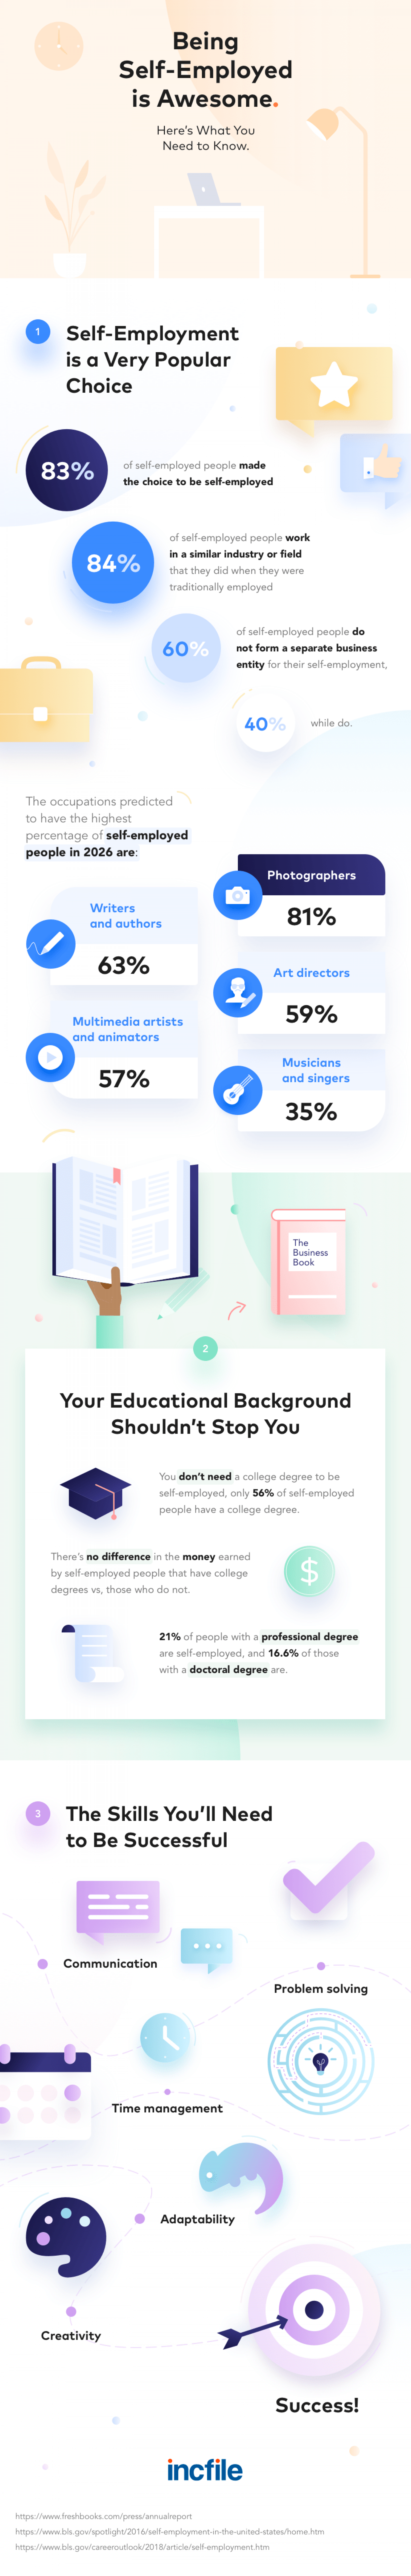 Being Self Employed is Awesome Infographic